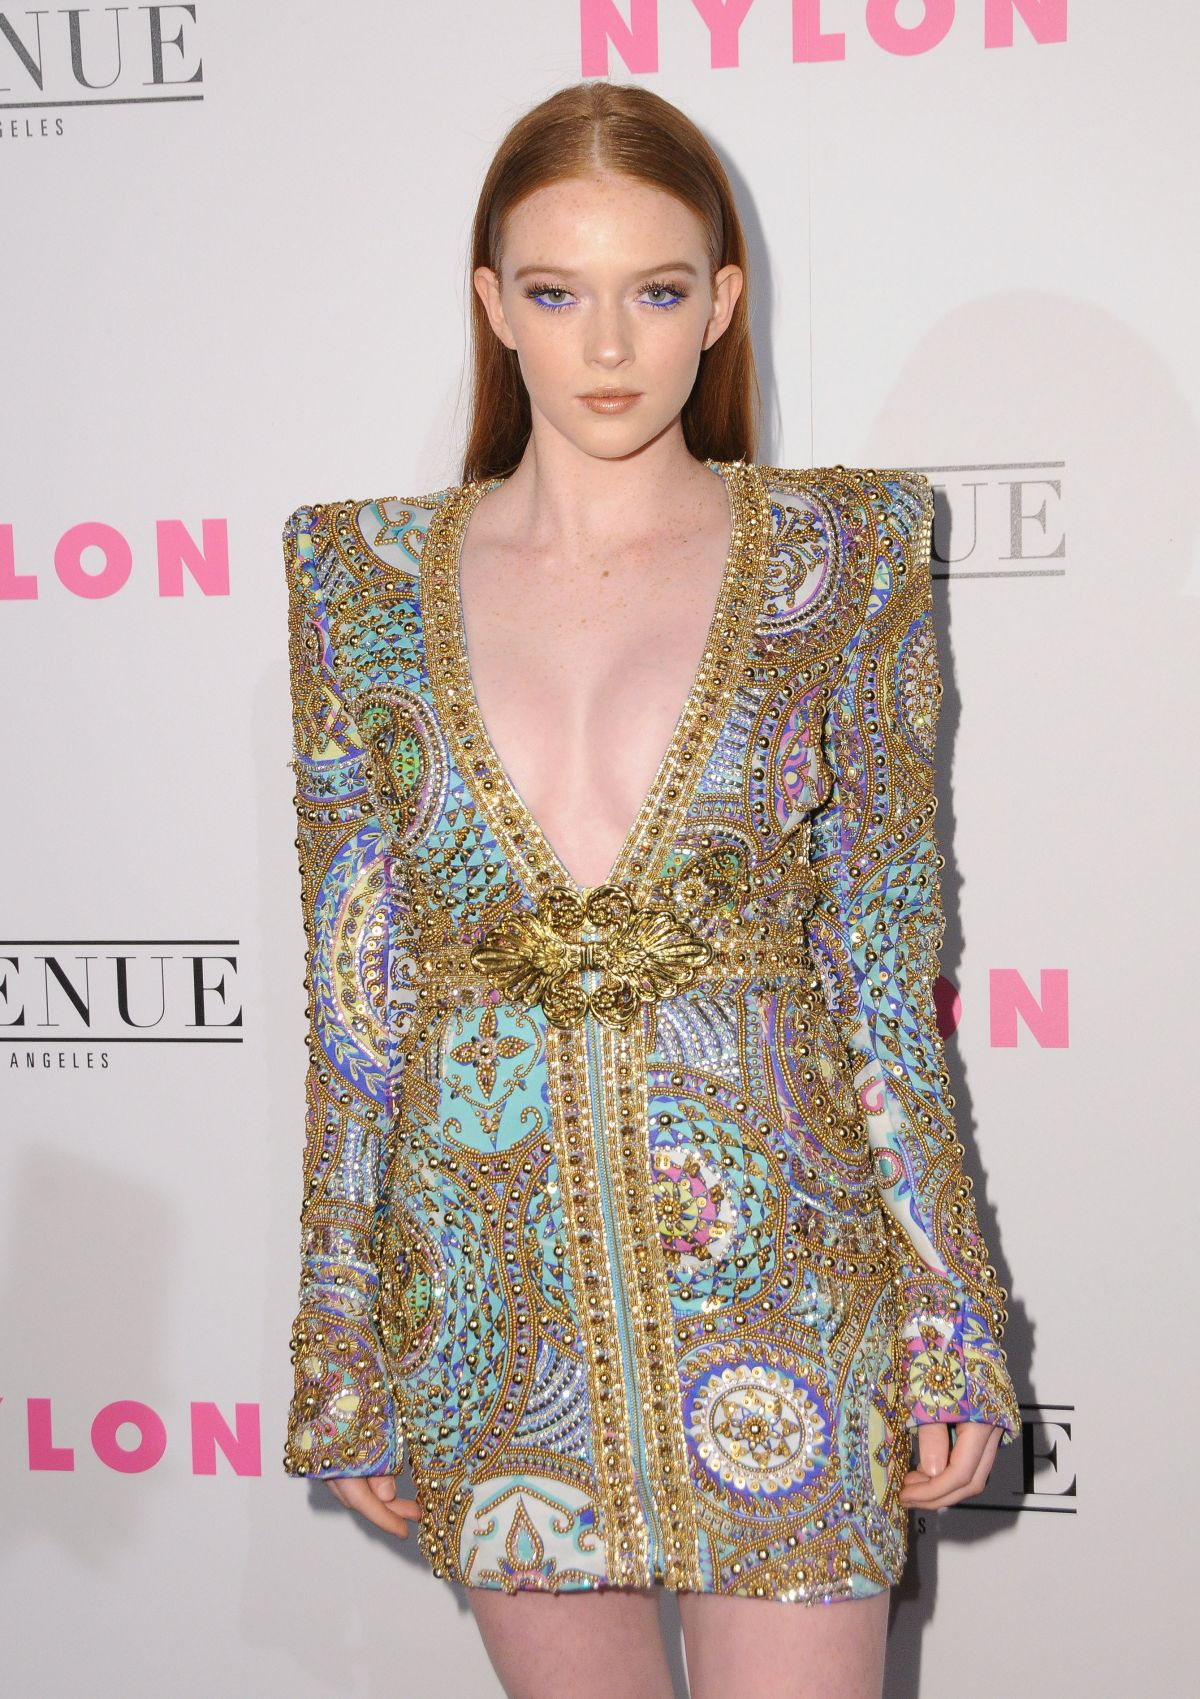 LARSEN THOMPSON at Nylon Young Hollywood May Issue Party in Los Angeles 05/02/2017